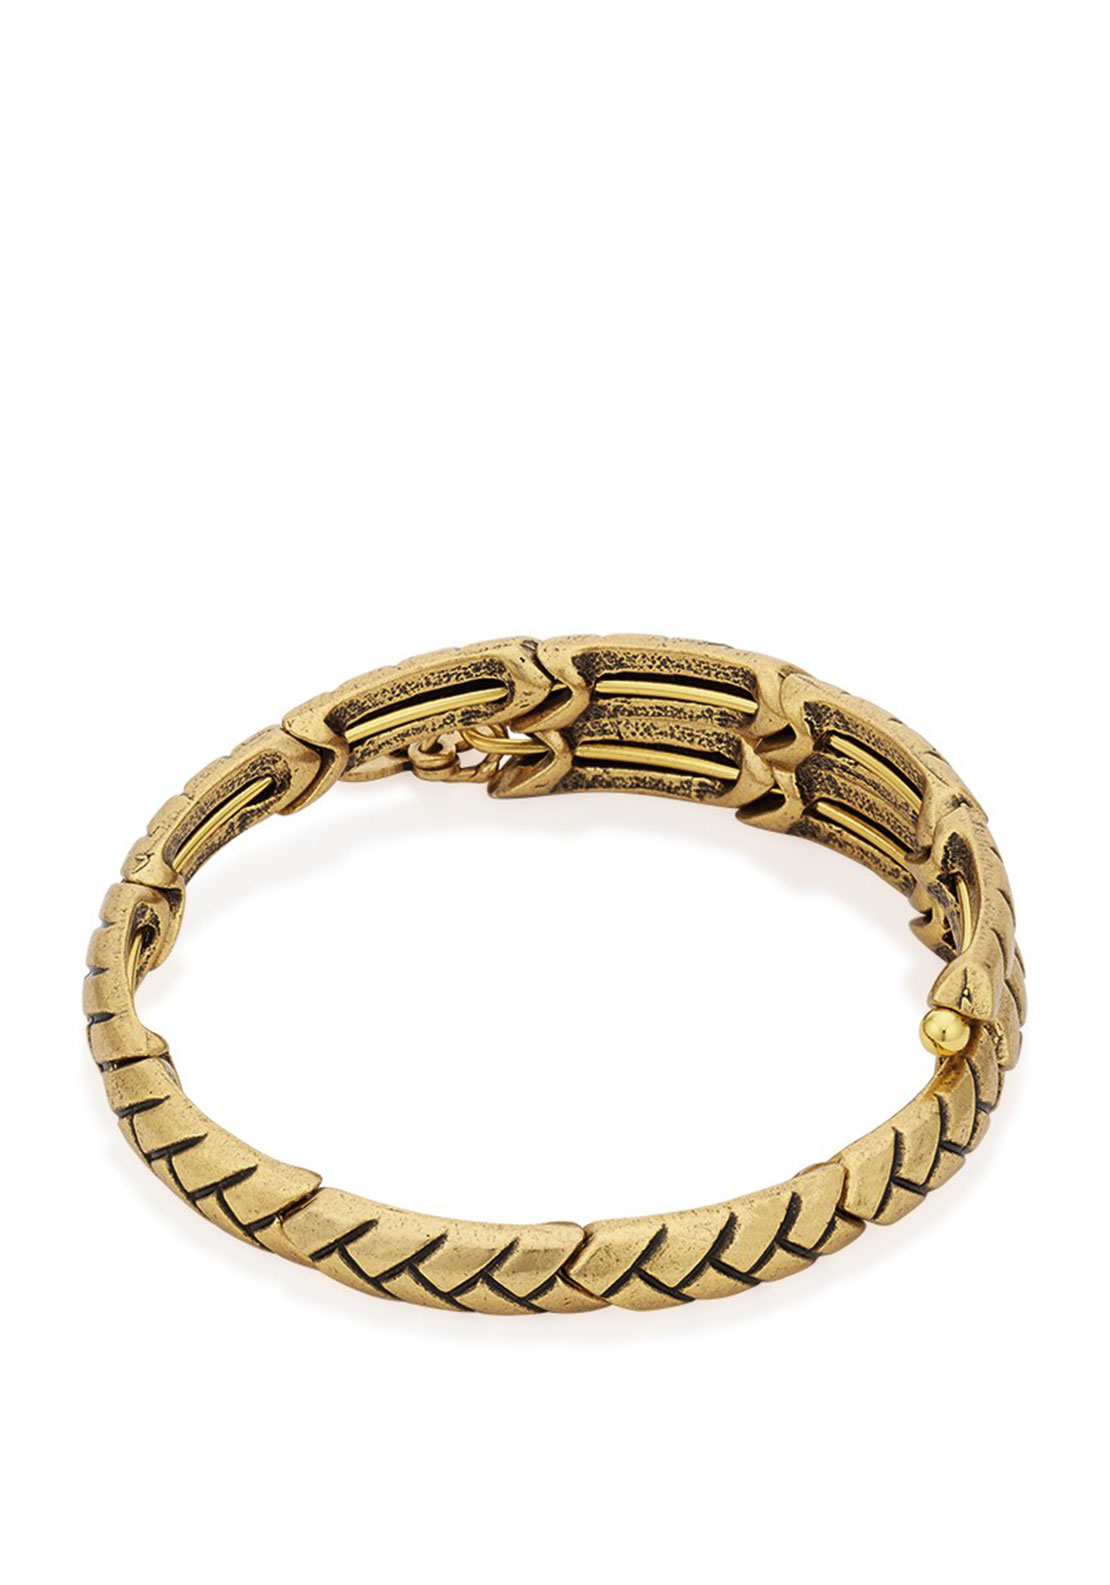 Alex and Ani Natural Weave Bracelet, Gold Plated